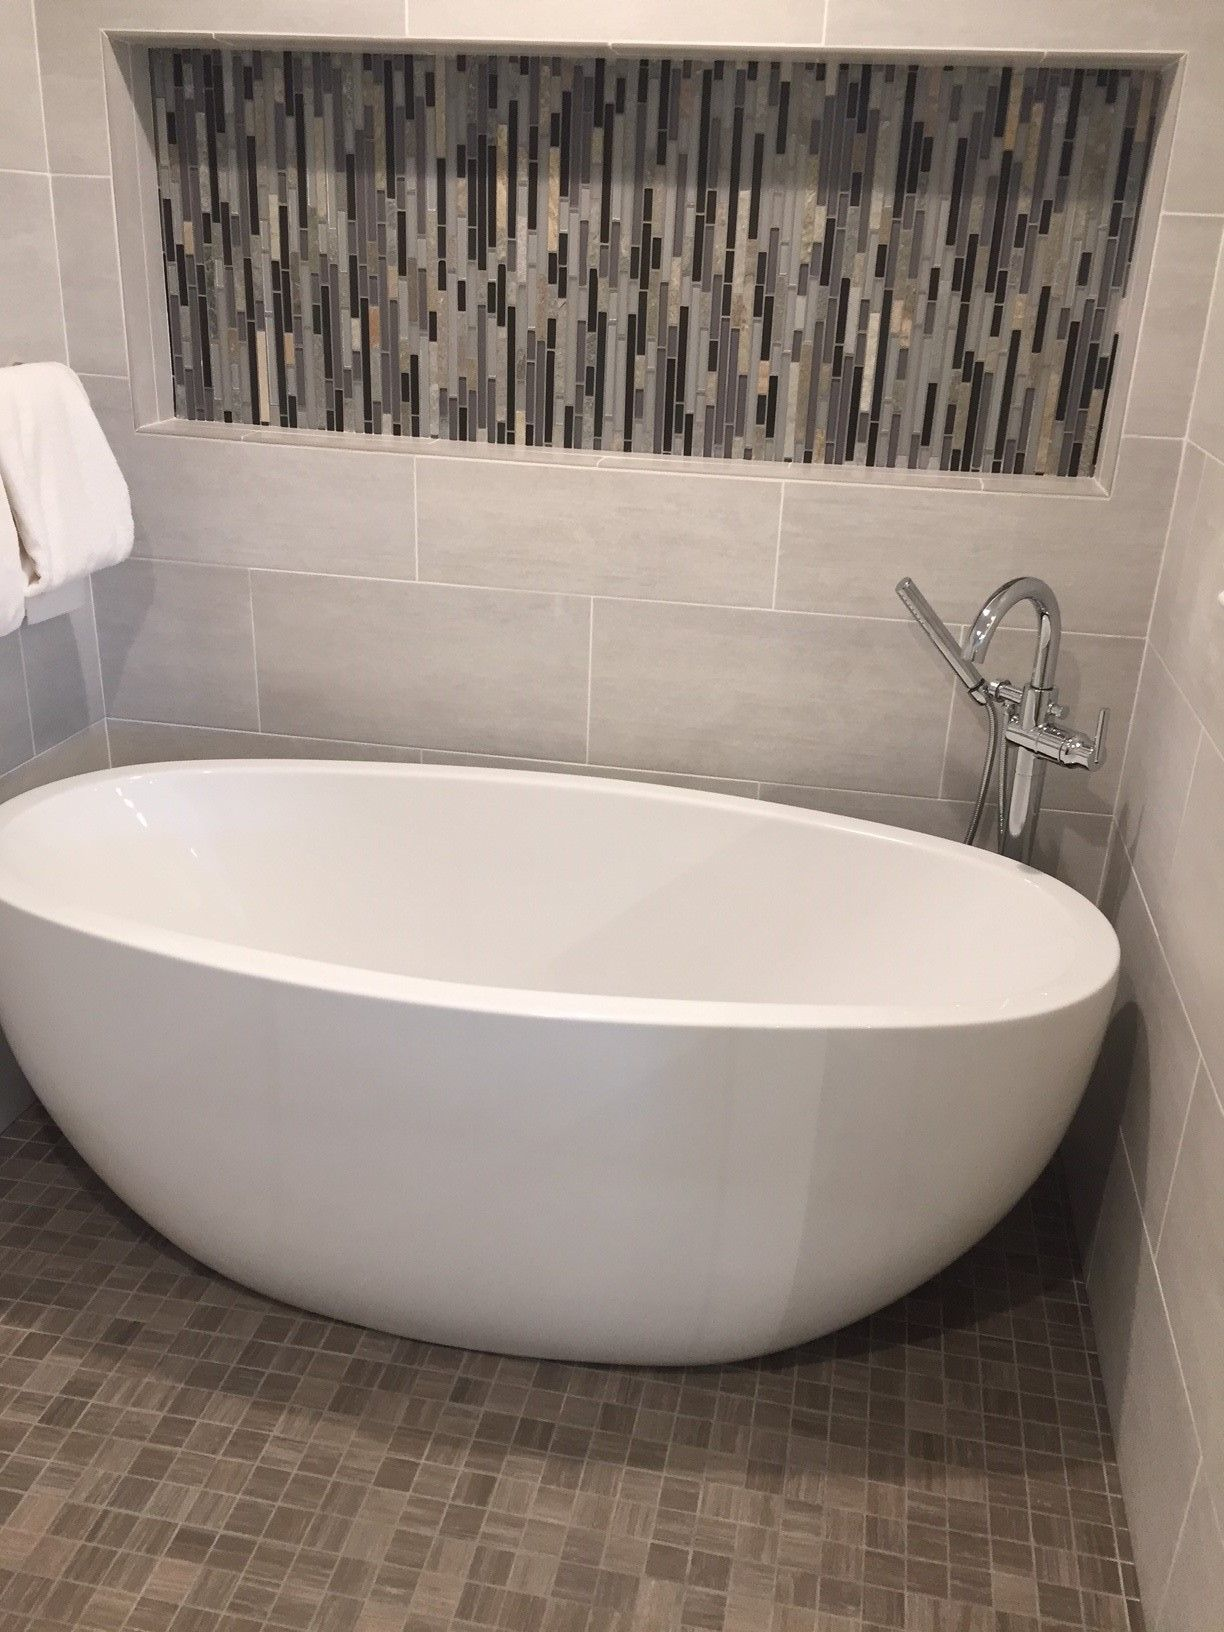 Contura ii featured at the metropolitan bath tile in upper marlboro